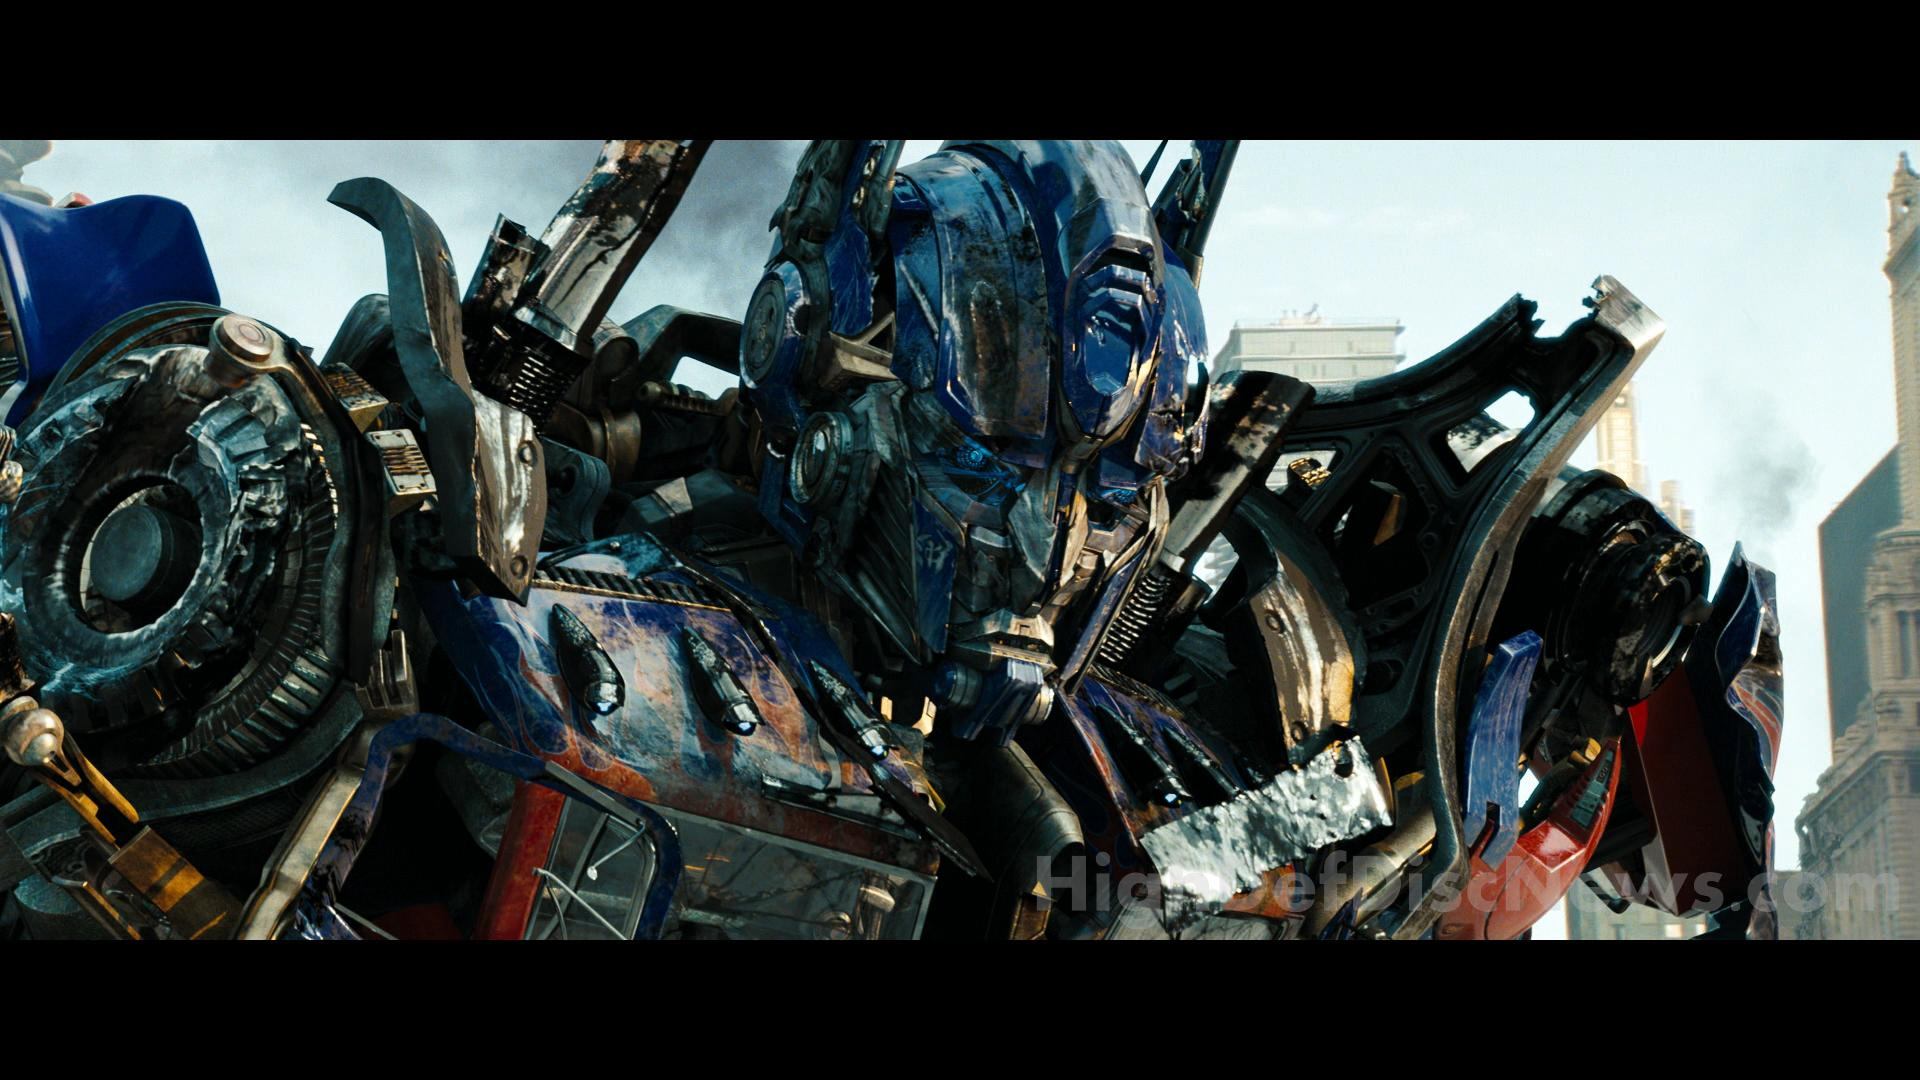 optimus prime wallpaper download - photo #13